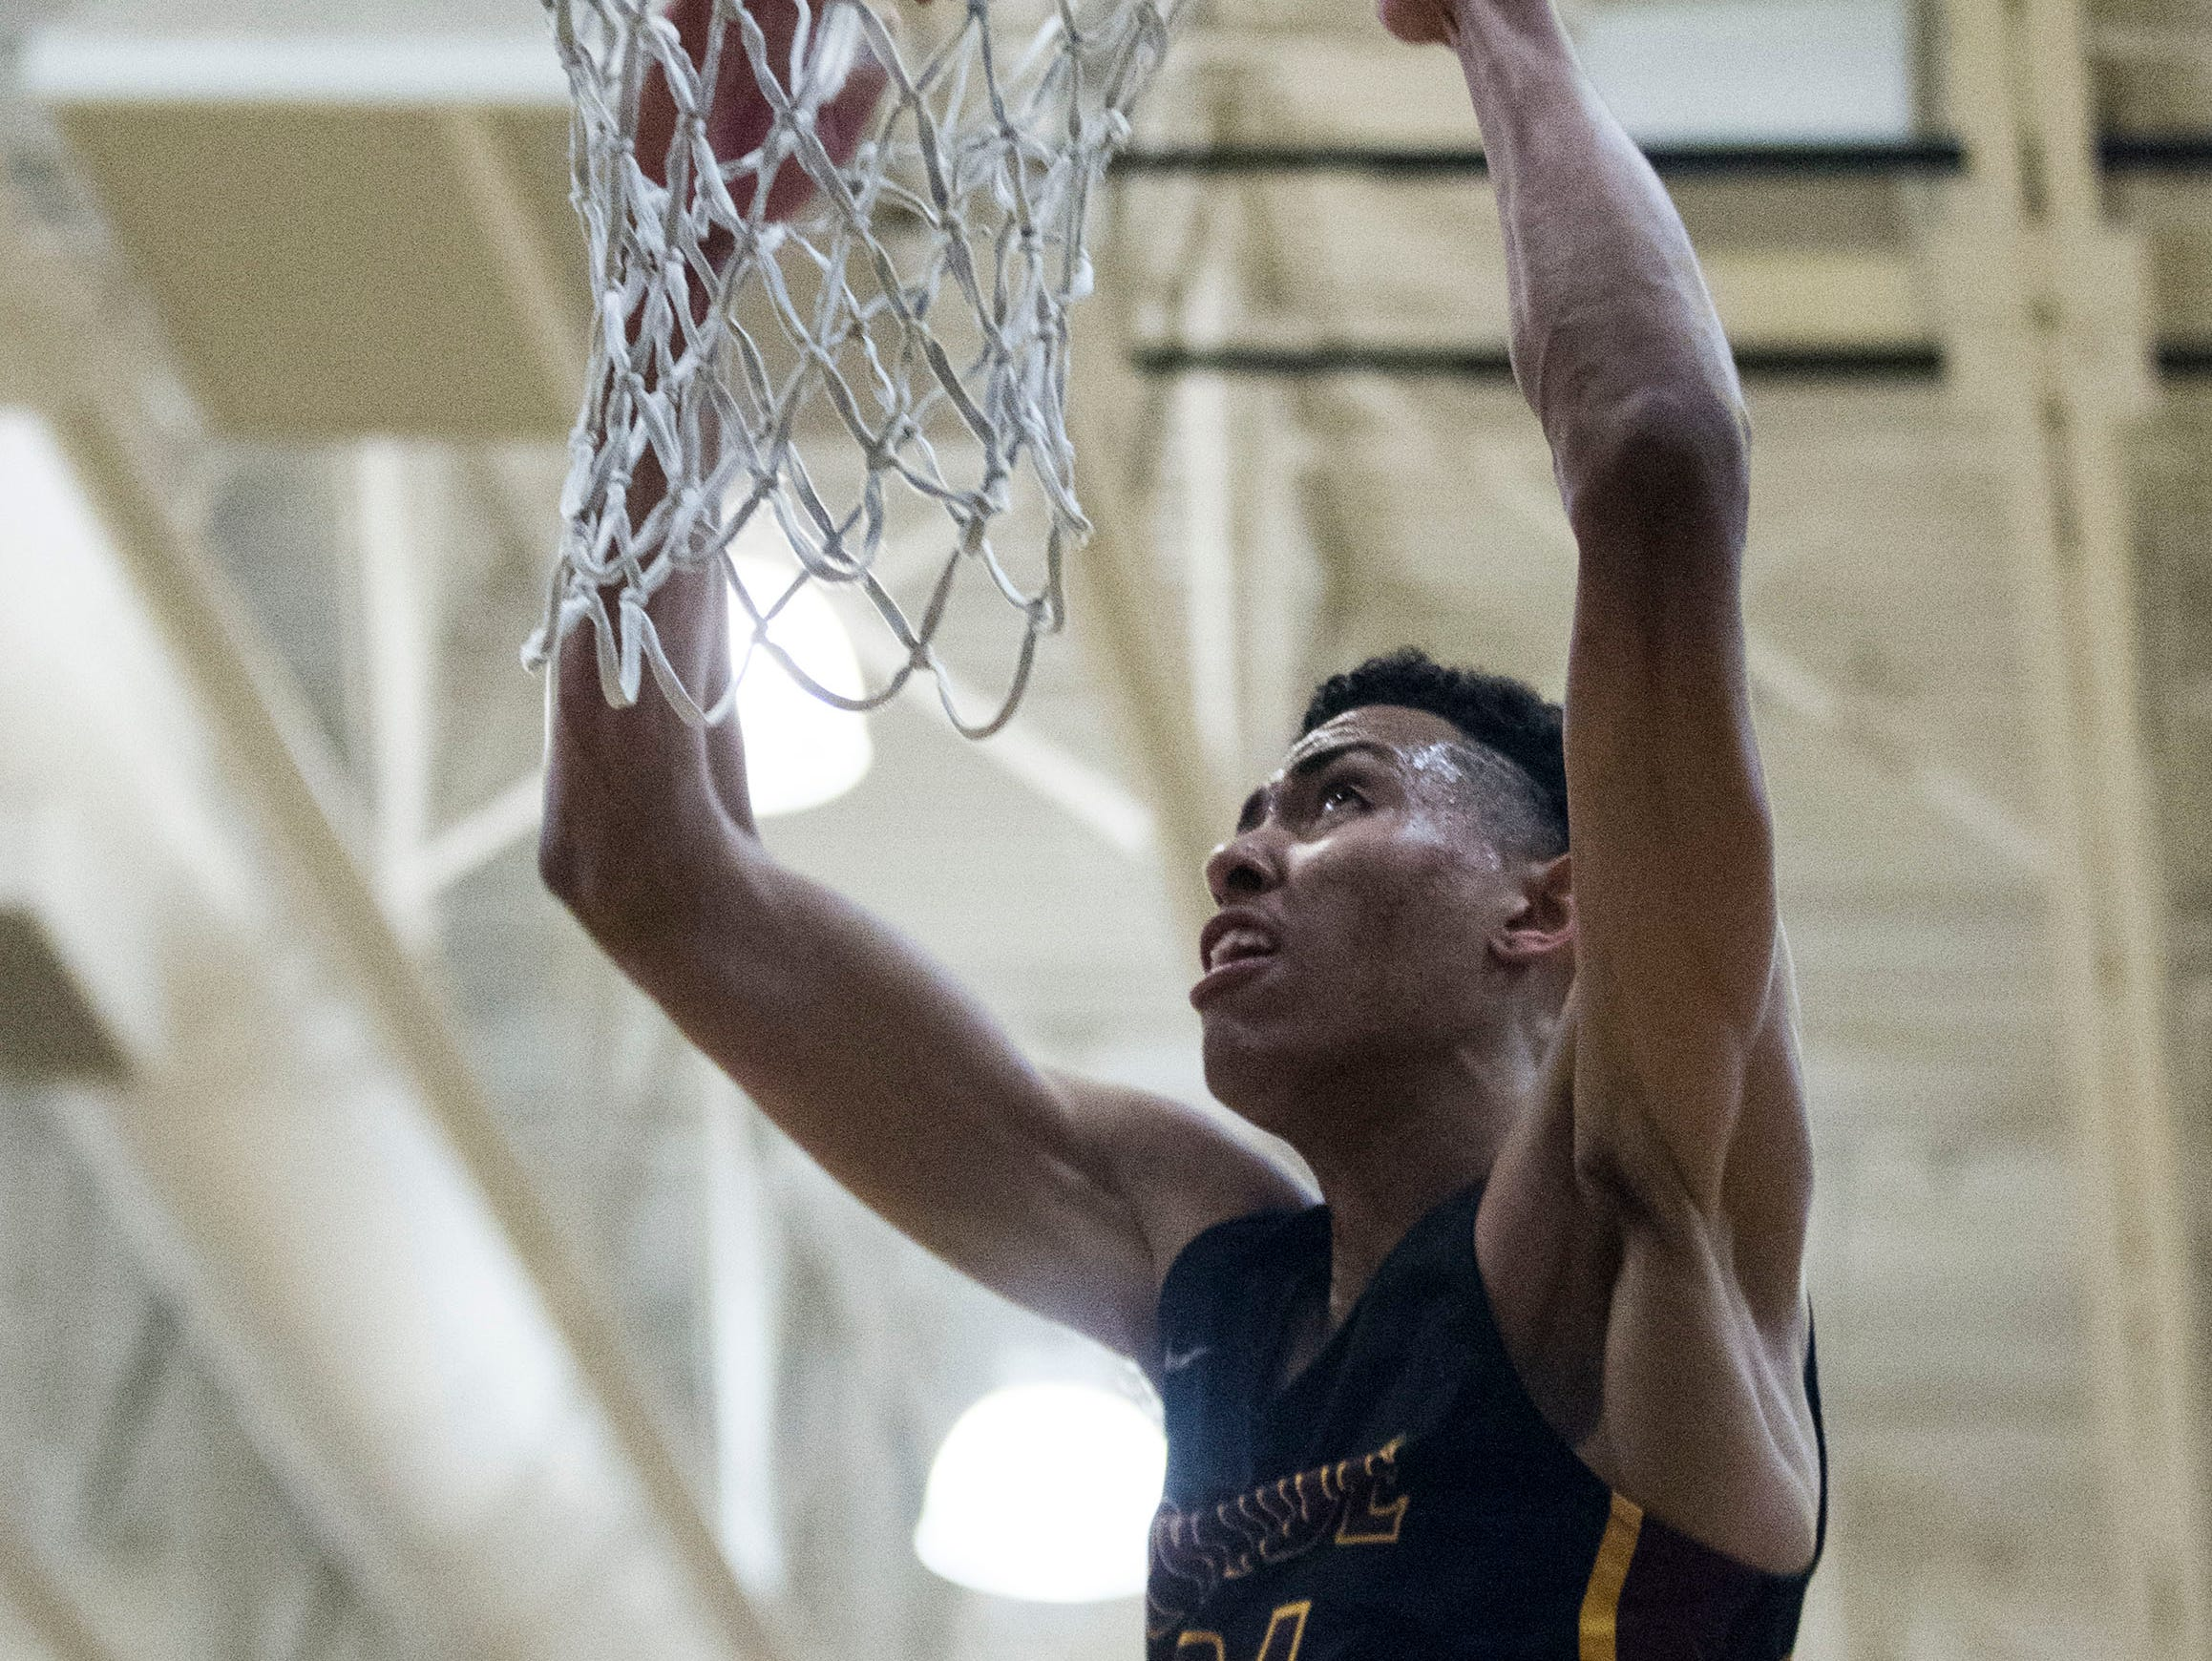 Mountain Pointe's Jalen Graham (24) slams one home against Desert Vista during in the second half of their game at Desert Vista High School in Phoenix, Friday, Jan.11, 2019.